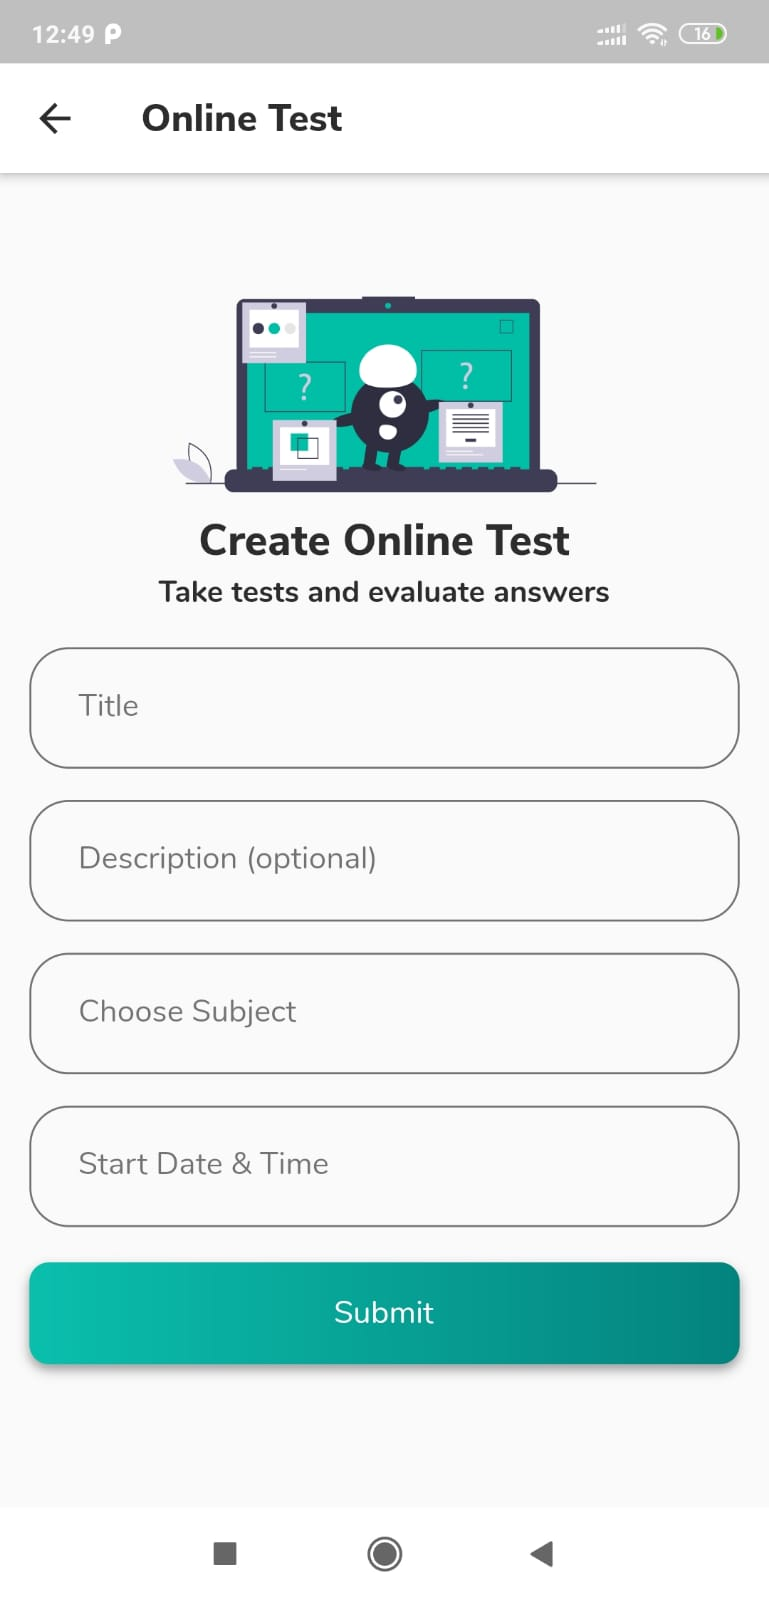 How to conduct successful online tests and exams for your students?